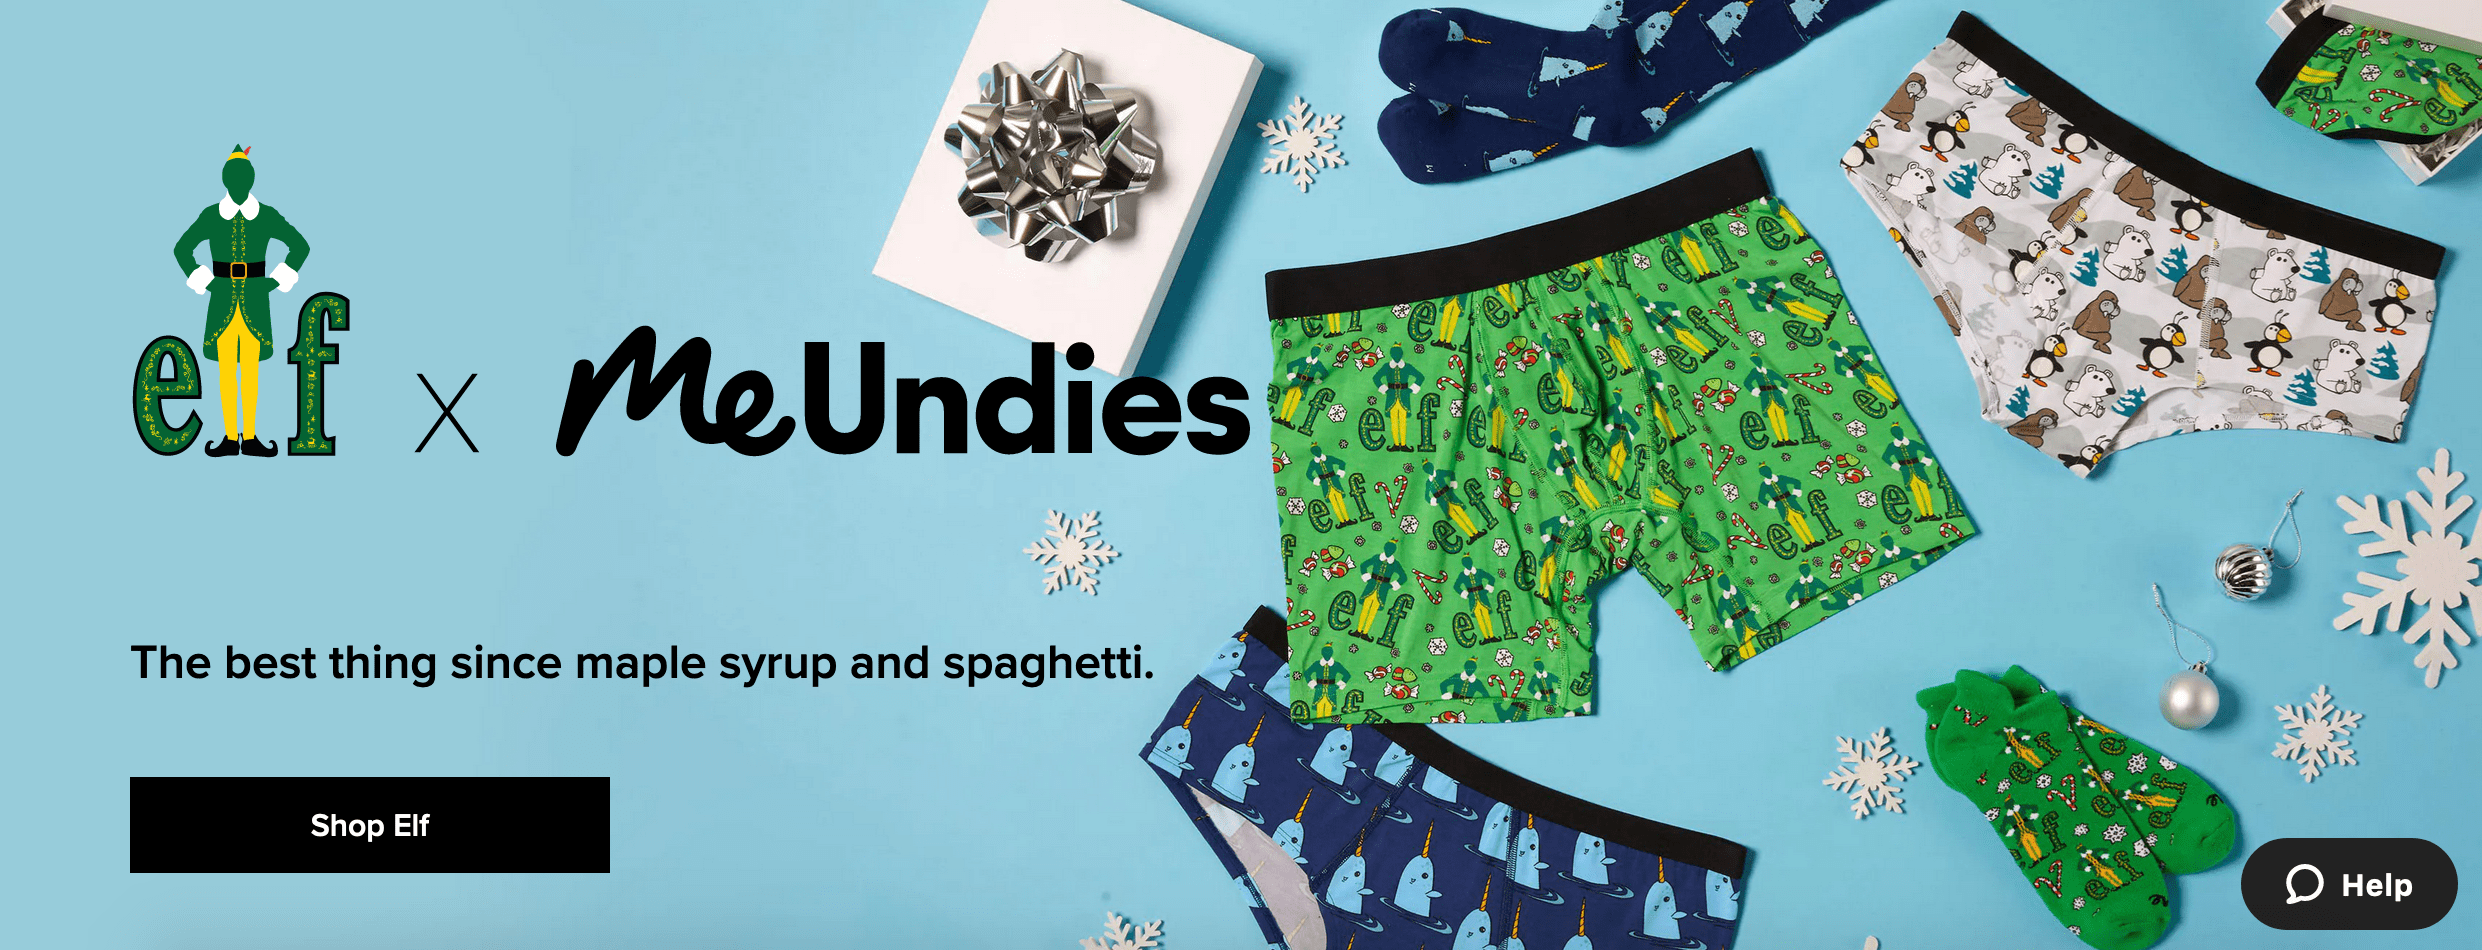 MeUndies website